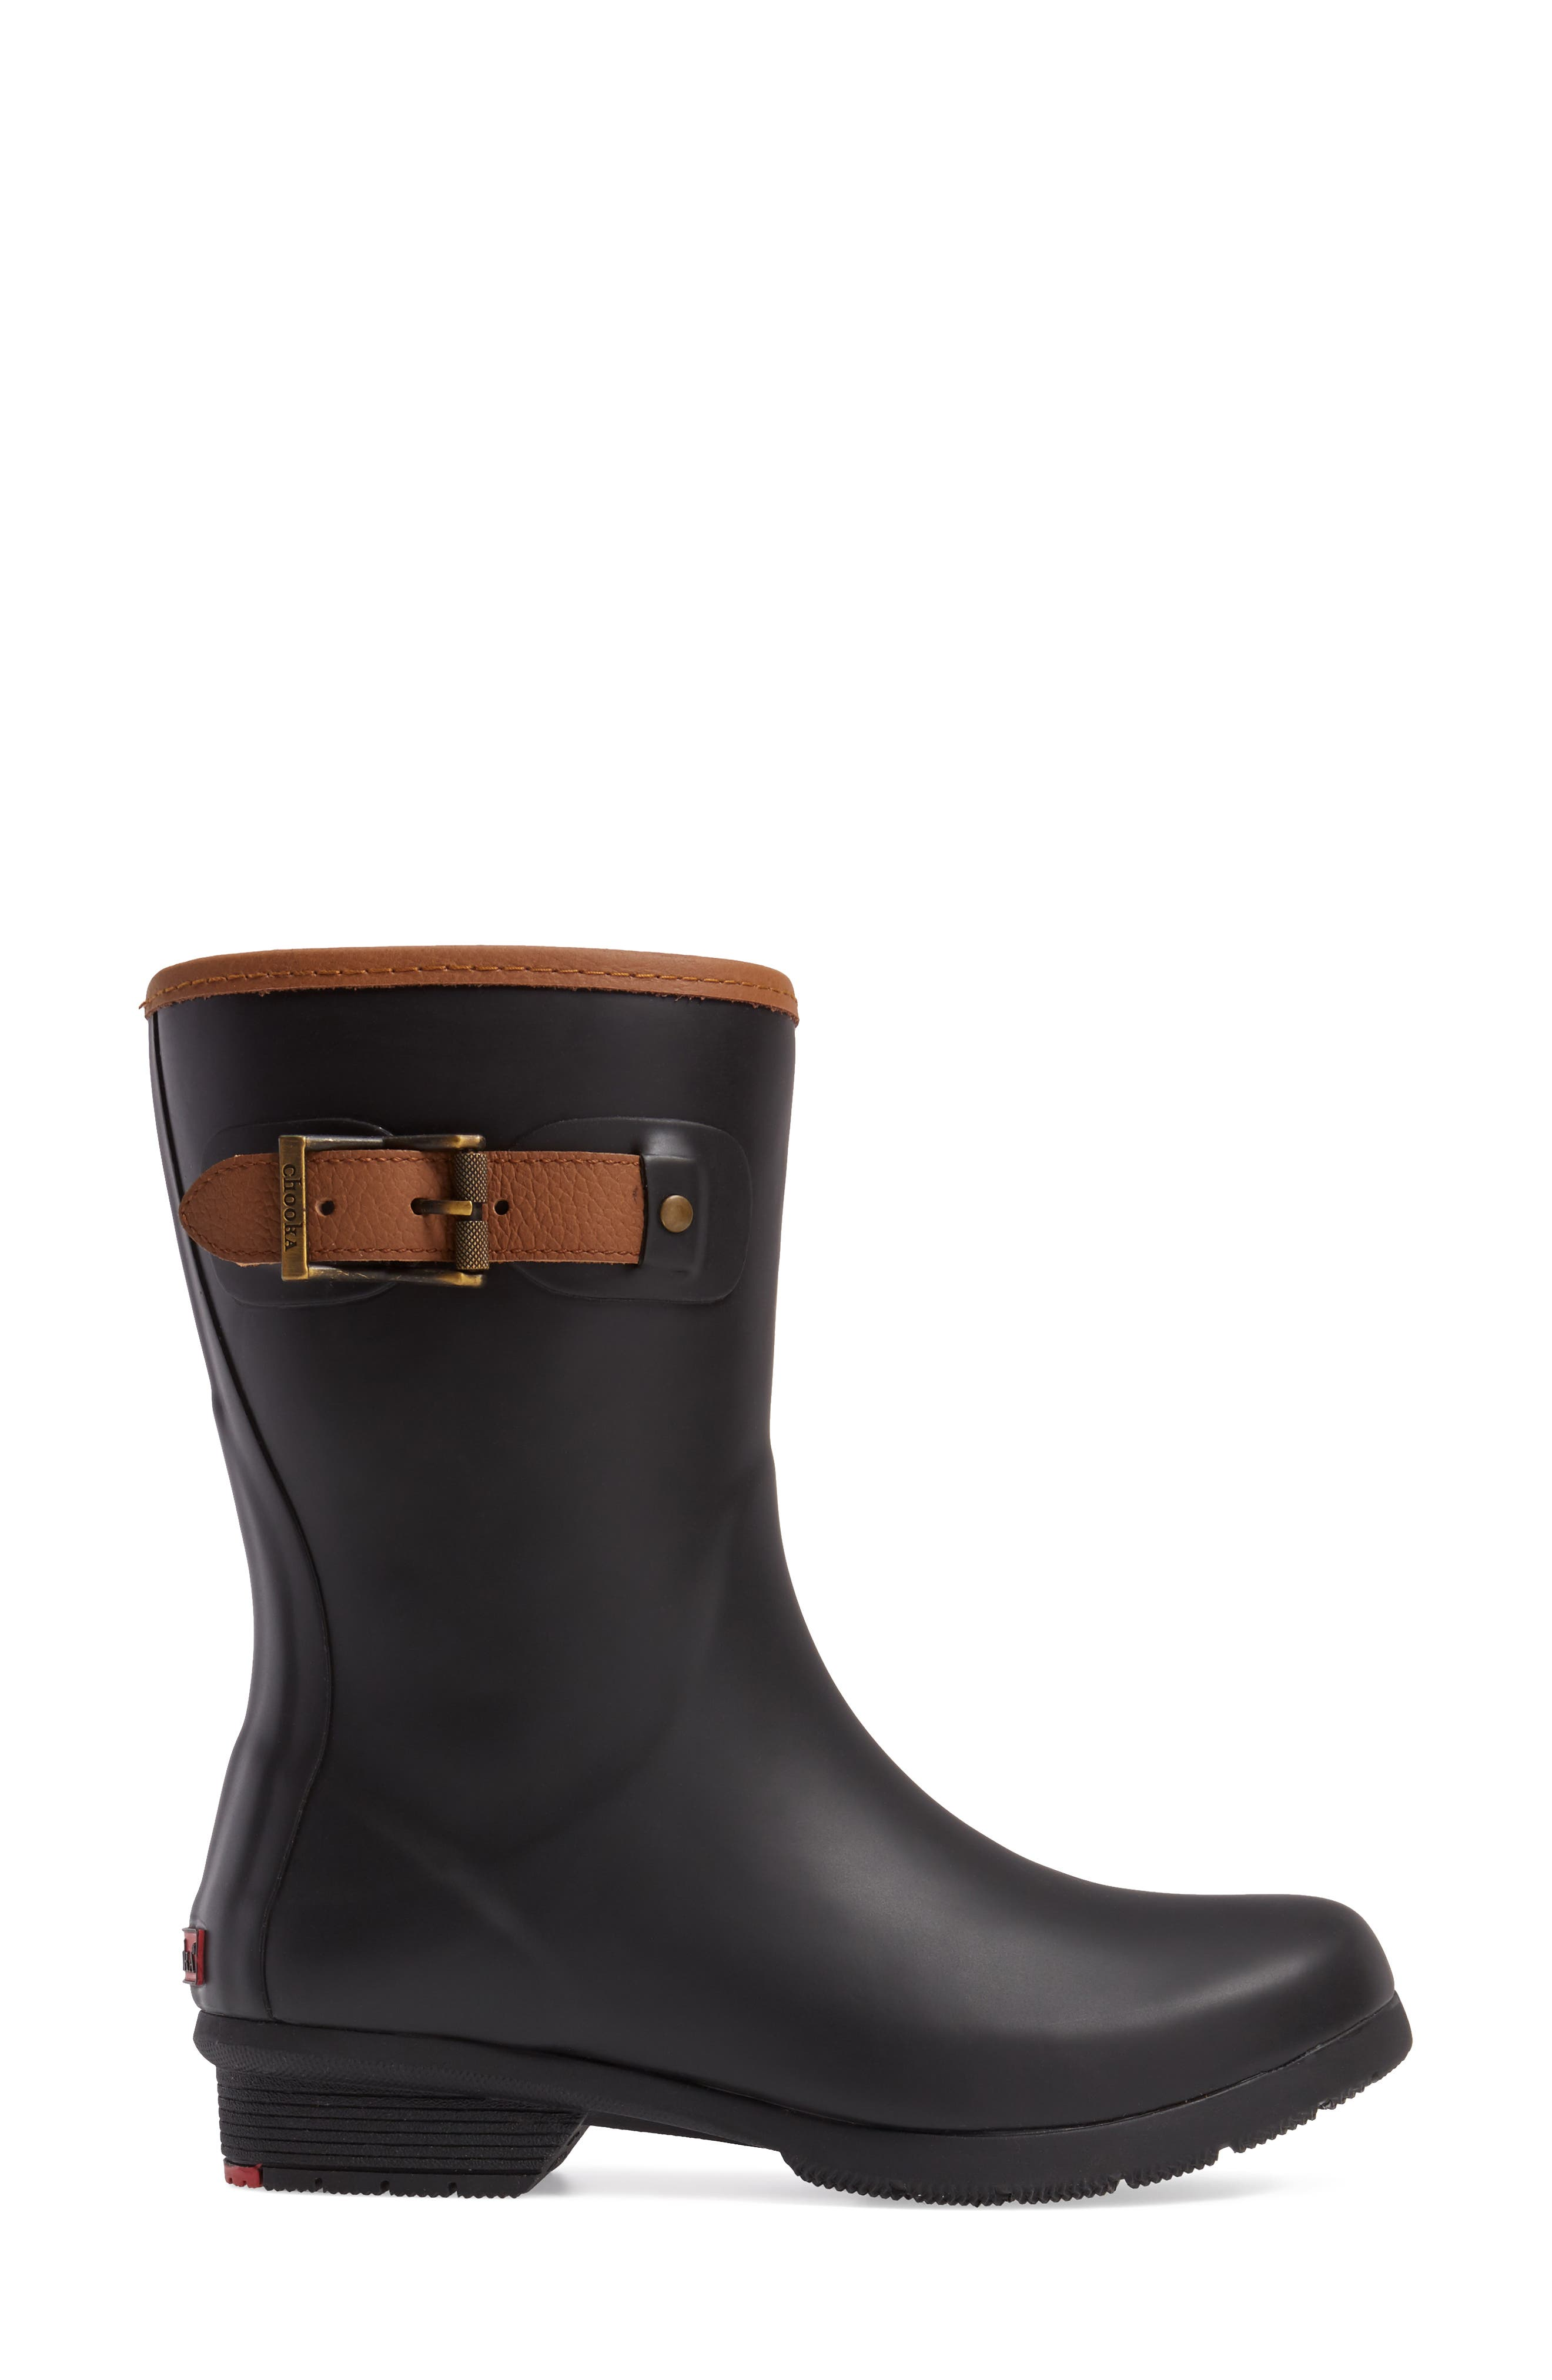 City Solid Mid Height Rain Boot,                             Alternate thumbnail 3, color,                             Black